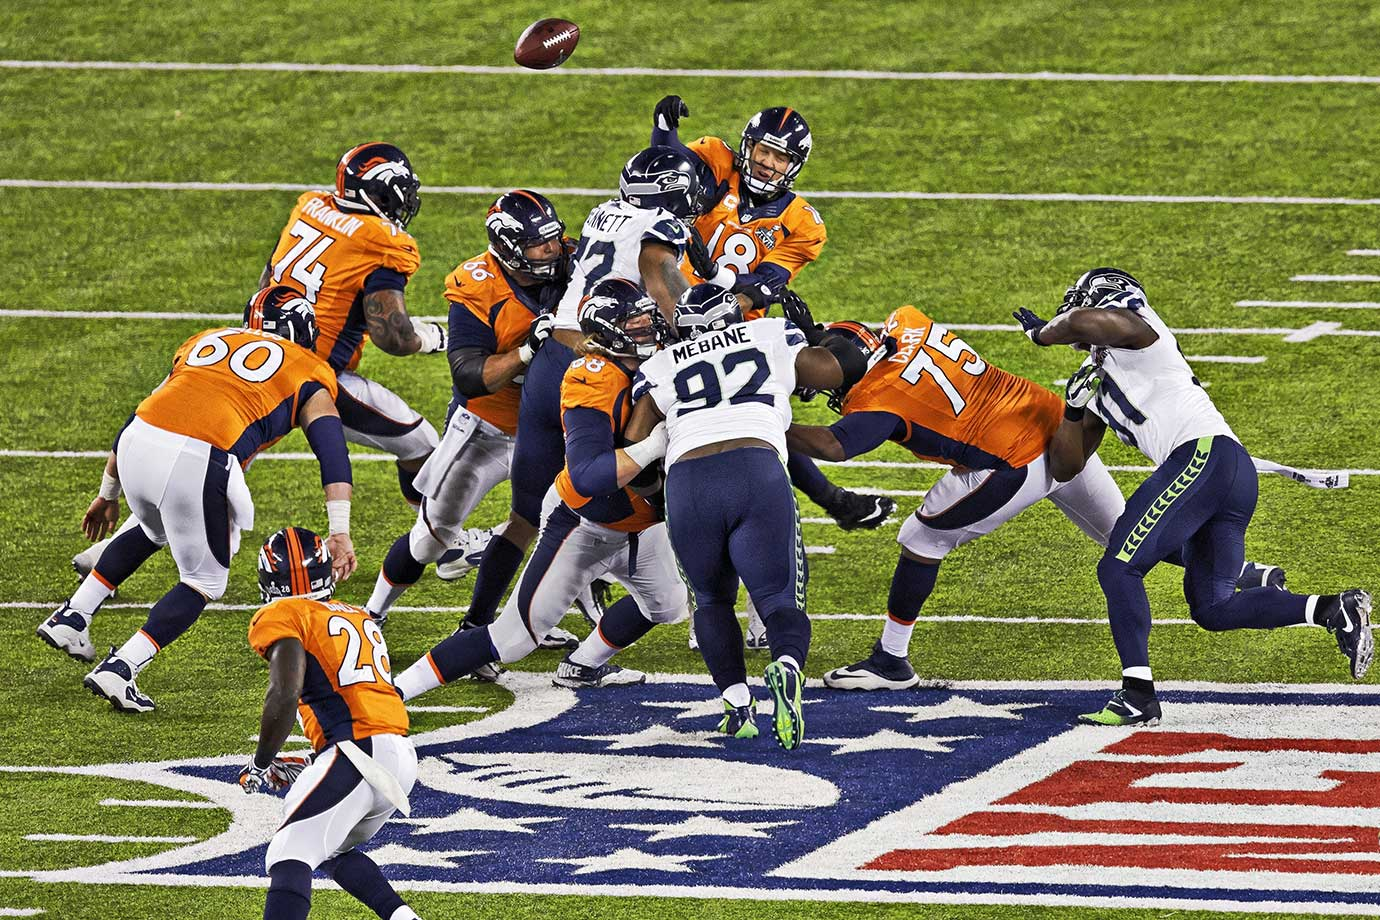 Denver Broncos quarterback Peyton Manning fumbles after a sack by Seattle Seahawks defensive end Michael Bennett. It was one of four Broncos turnovers on the night as Seattle dominated Denver, 43-8.